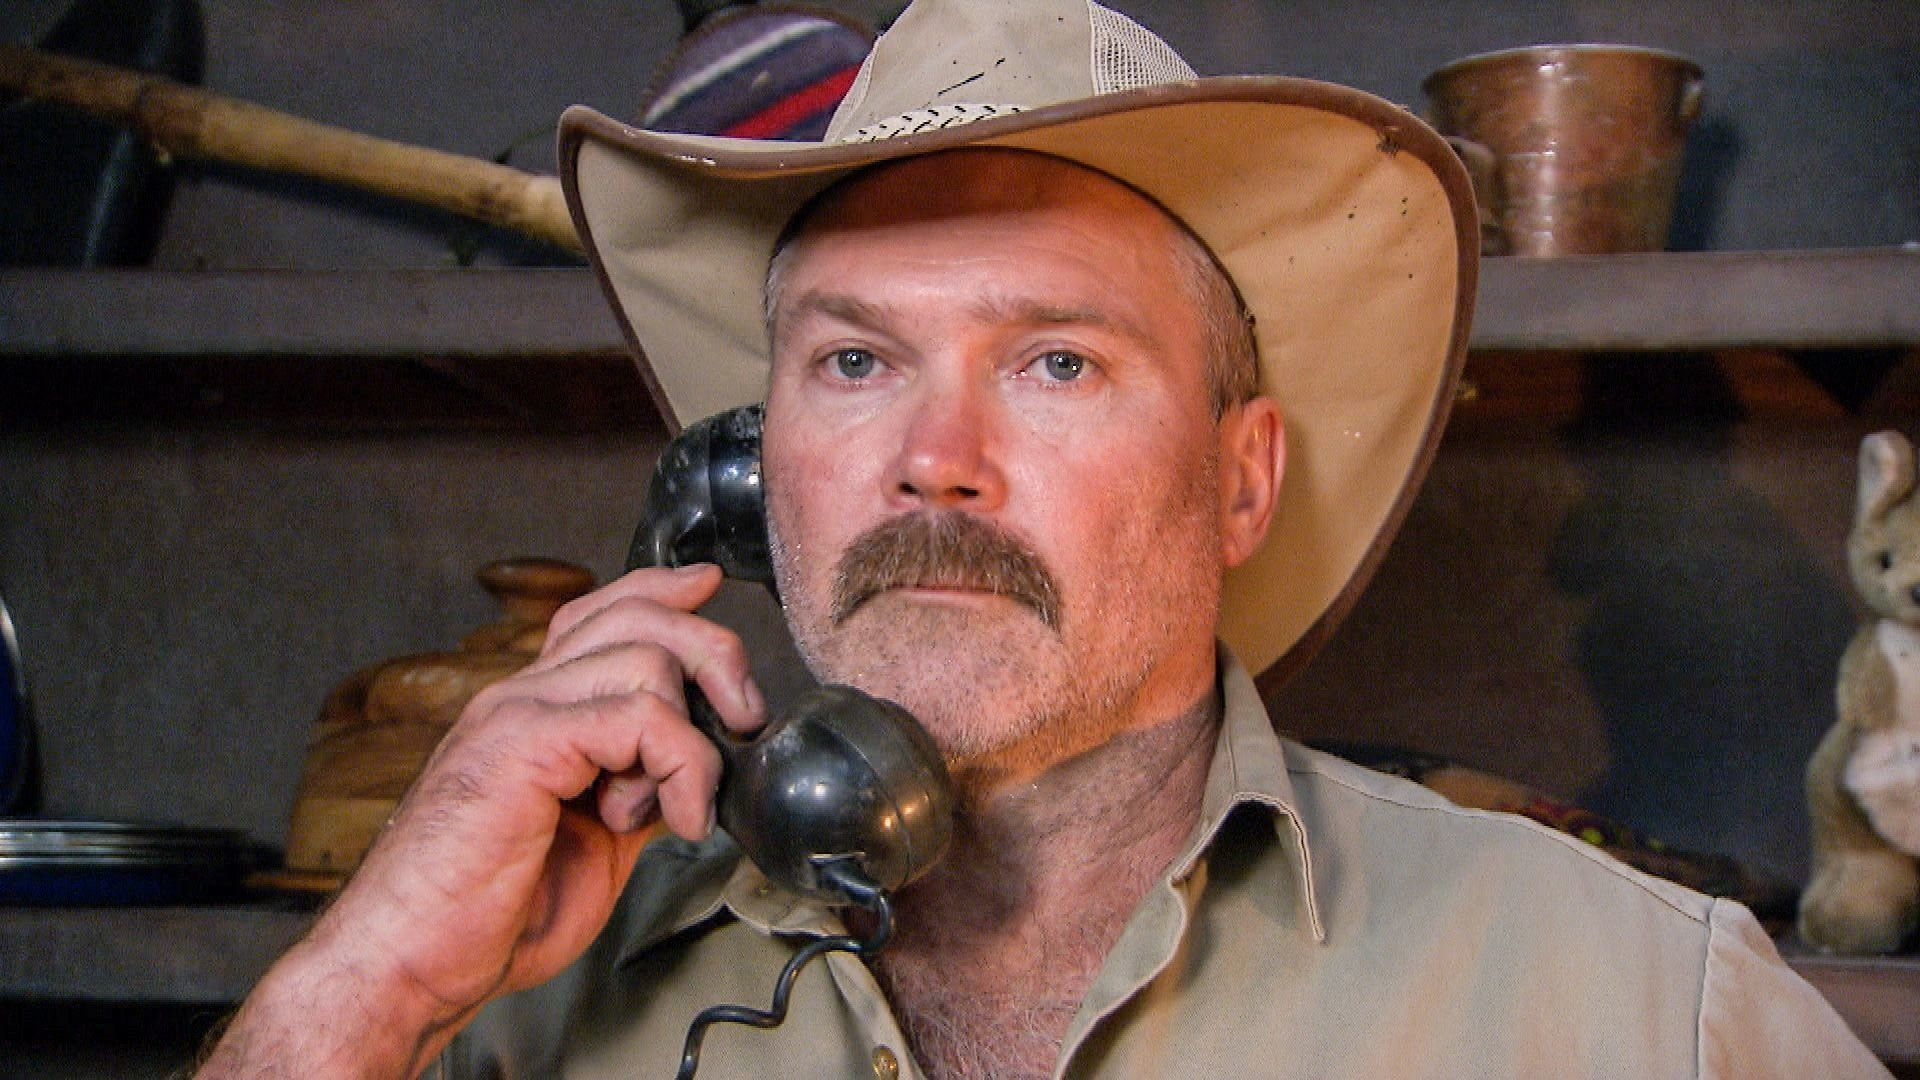 Kiosk Keith 'Fired' From 'I'm A Celebrity… Get Me Out Of Here'